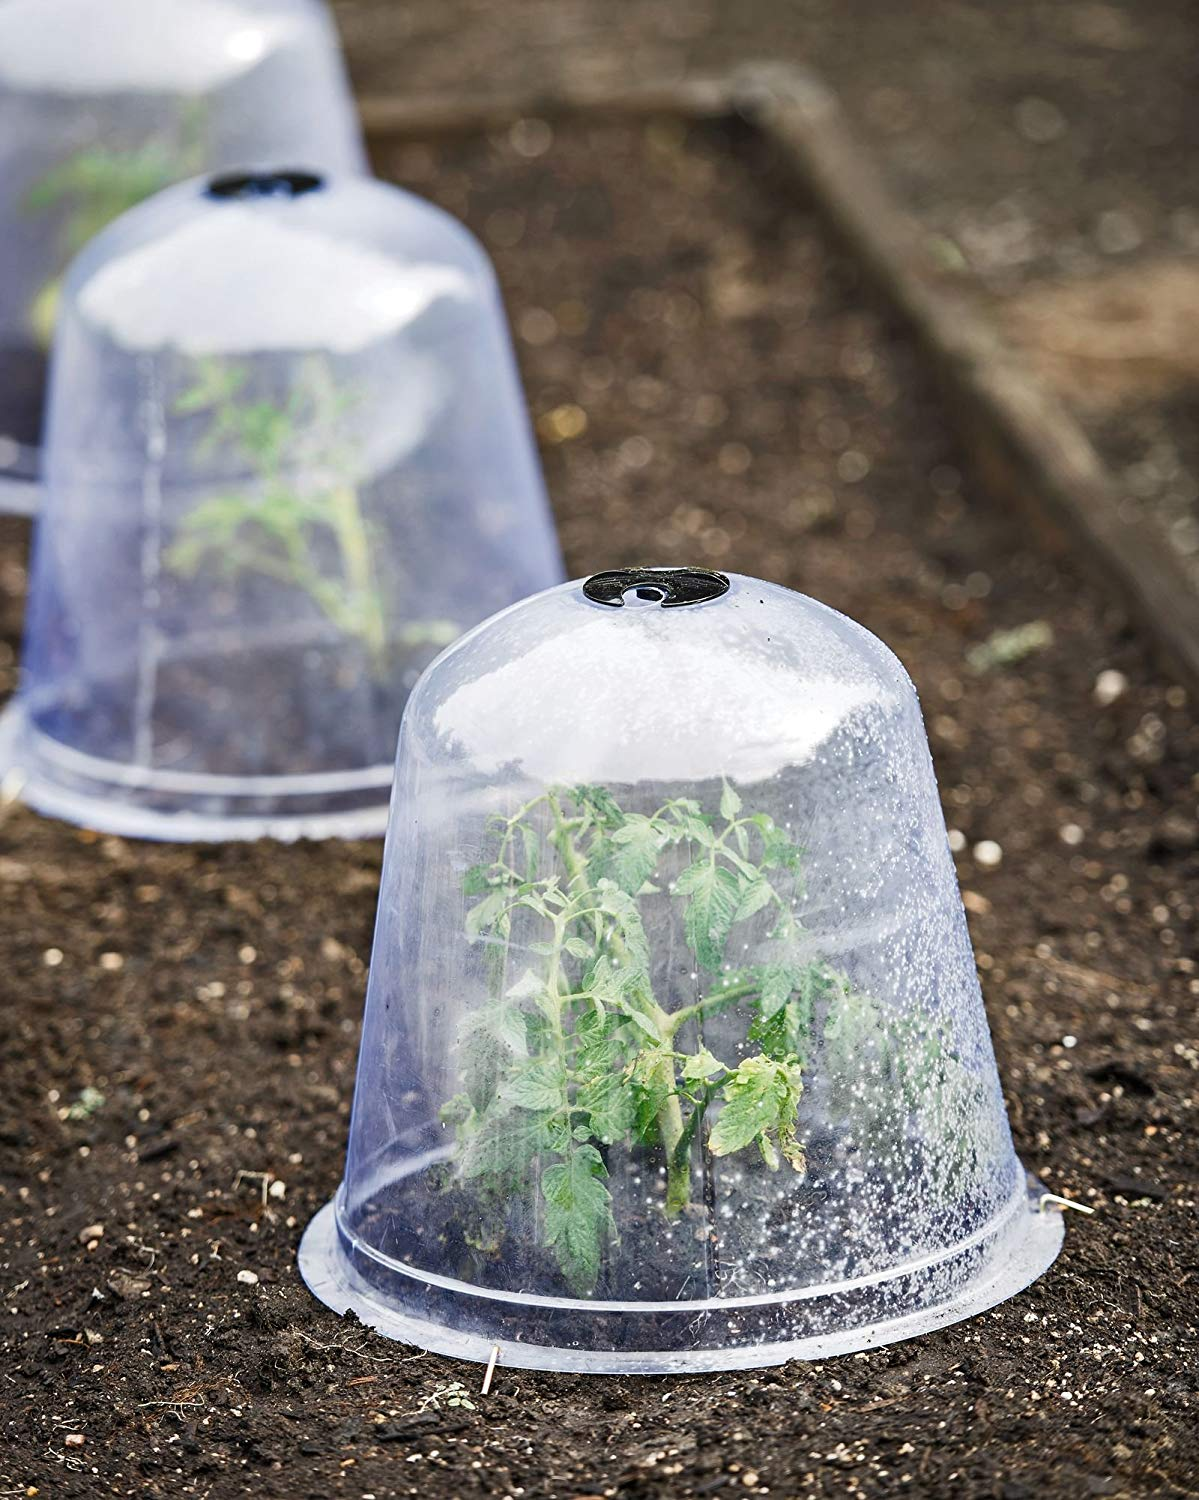 A close up image of three young tomato looking plants in a row in a garden bed. Each one has a plastic dome placed over the top of it. The insides of the domes have condensation building up on the sides of the domes.